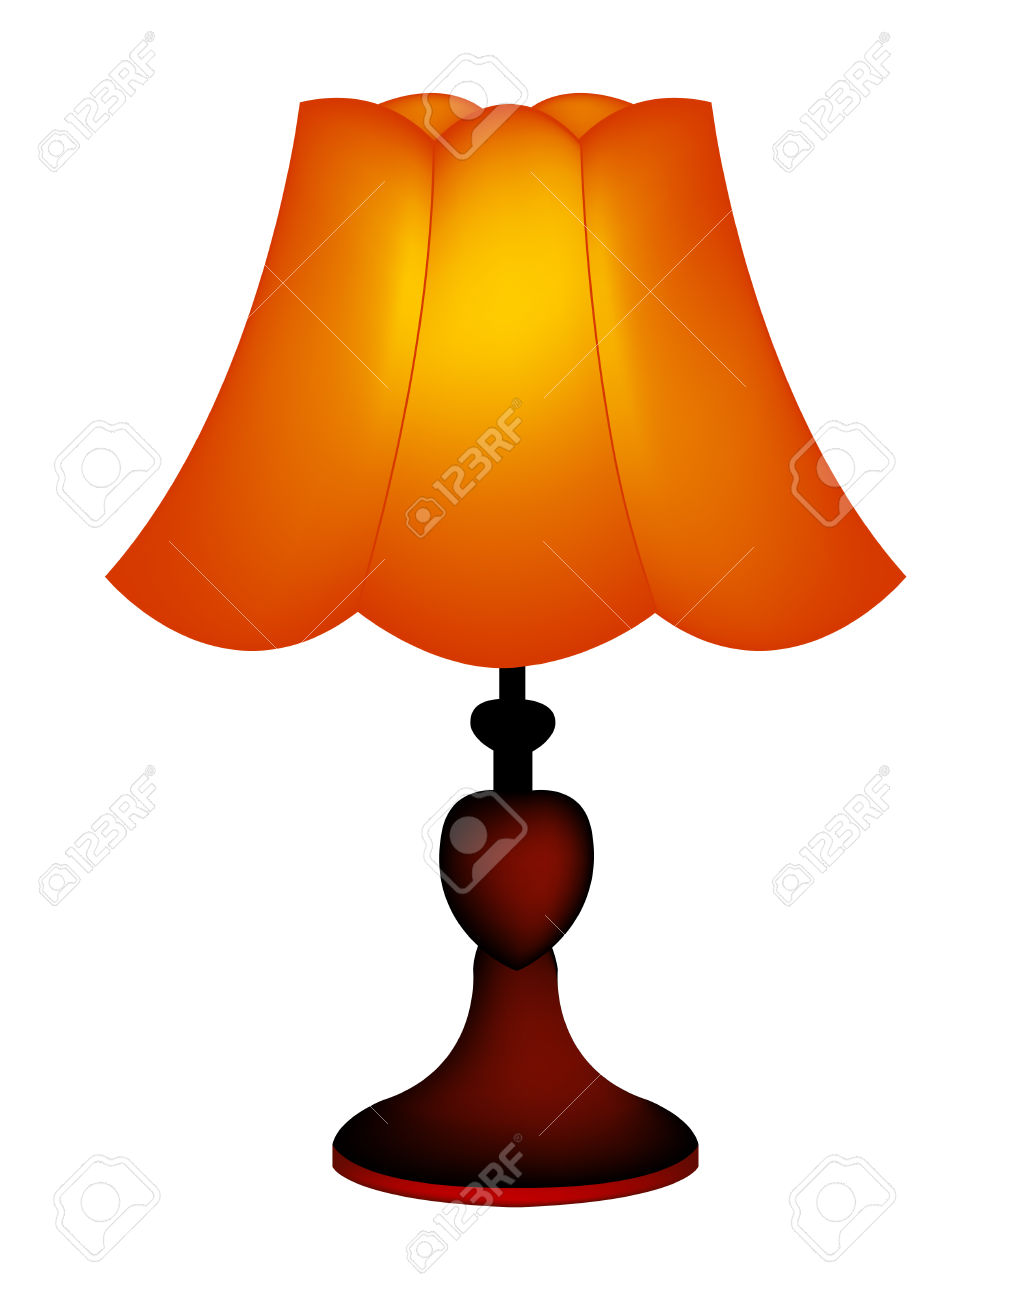 Silhouette lamp shades at getdrawings free for personal use 1011x1300 clipart of lamp black silhouette free clip art lemonize mozeypictures Image collections